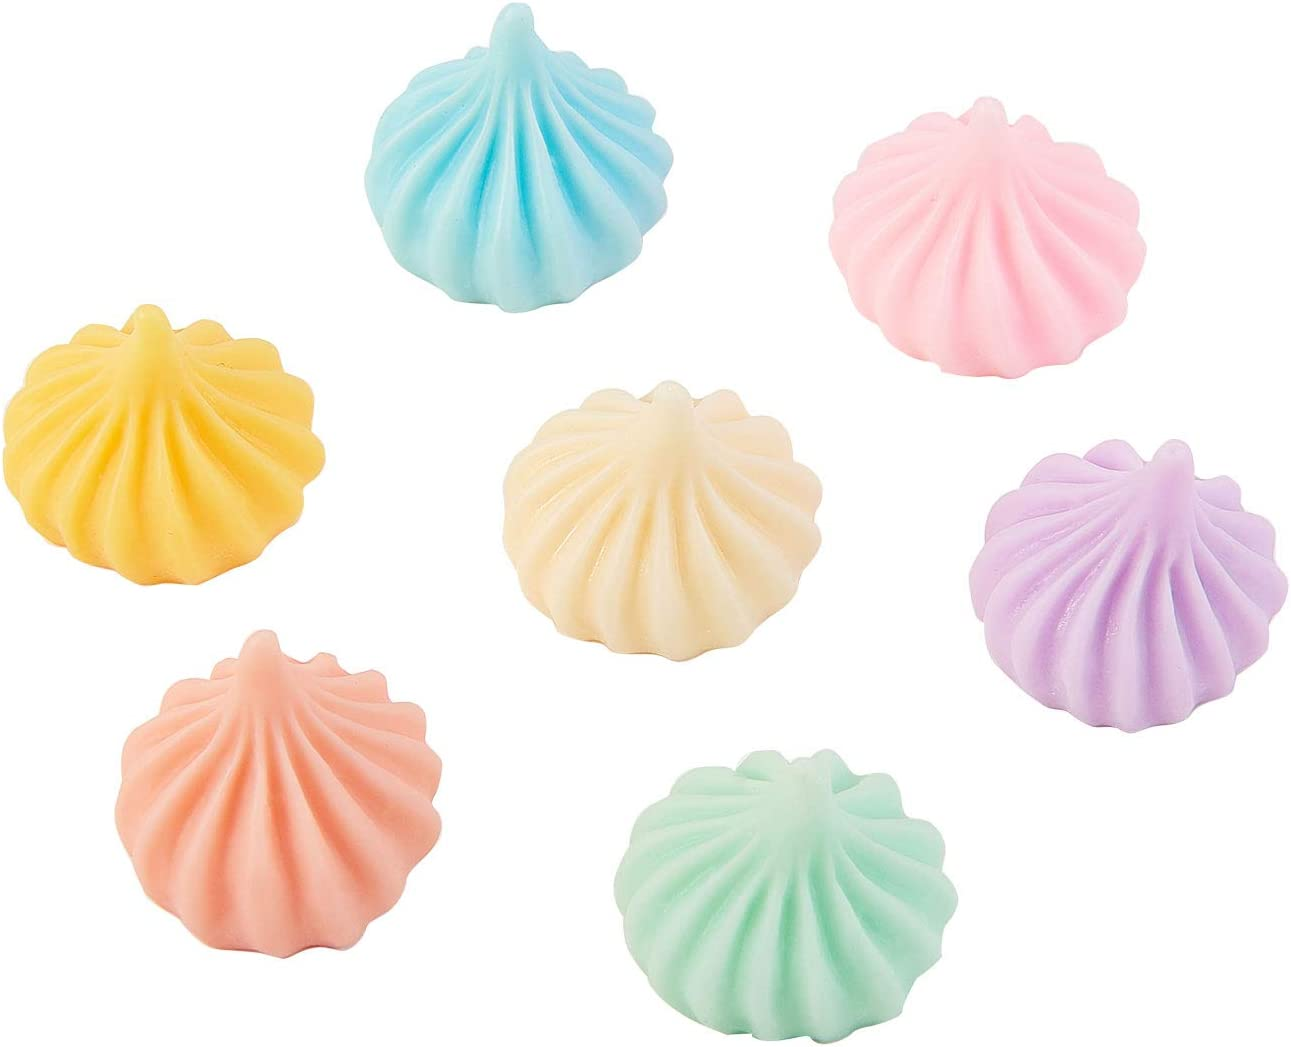 Airssory 200 Pcs Flatback Slime Charms Colored Faux Cream Shape Sugar Sticky Biscuit Steamed Stuffed Bun Imitation Food Resin Cabochons No-Hole in Bulk for DIY Crafts Cake Biscuit Decoration - 19~20mm